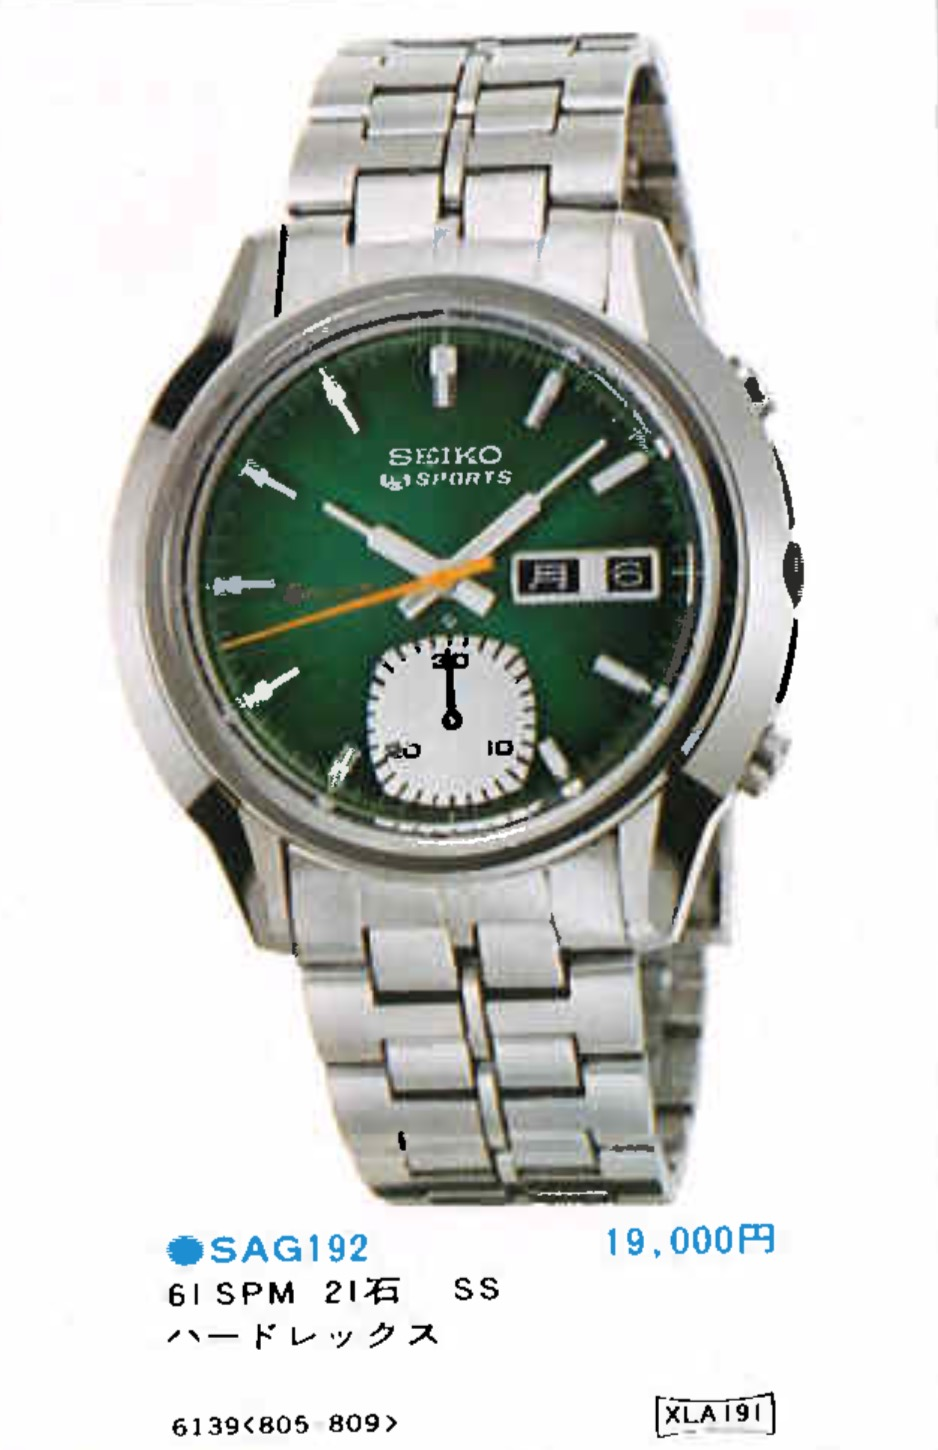 Seiko 5Sports Speedtimer 6139-8050 - OEM bracelet included, 175mm around (For sale)